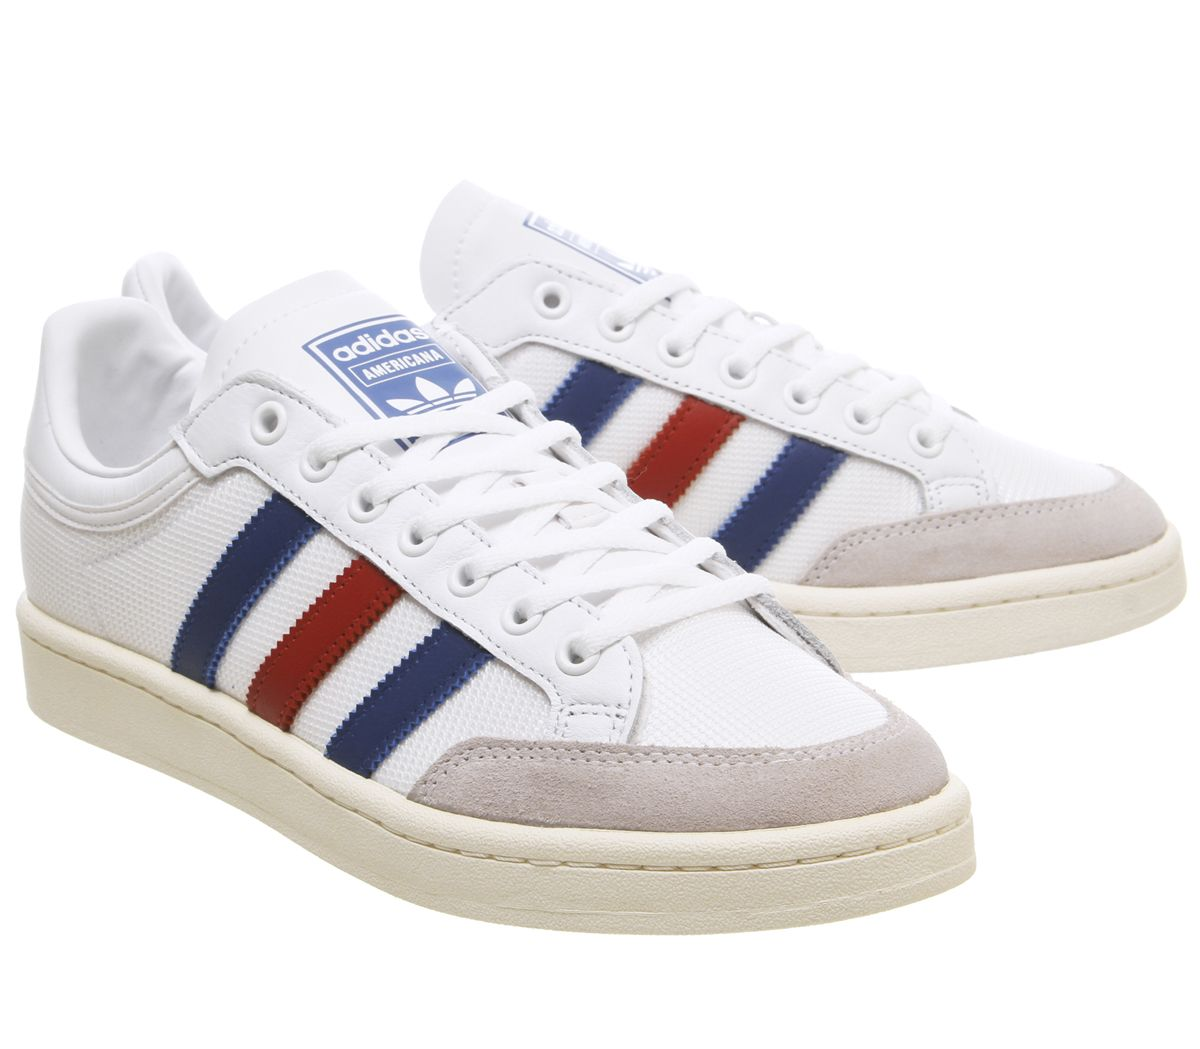 45% off adidas Americana Low Trainers on office shoes